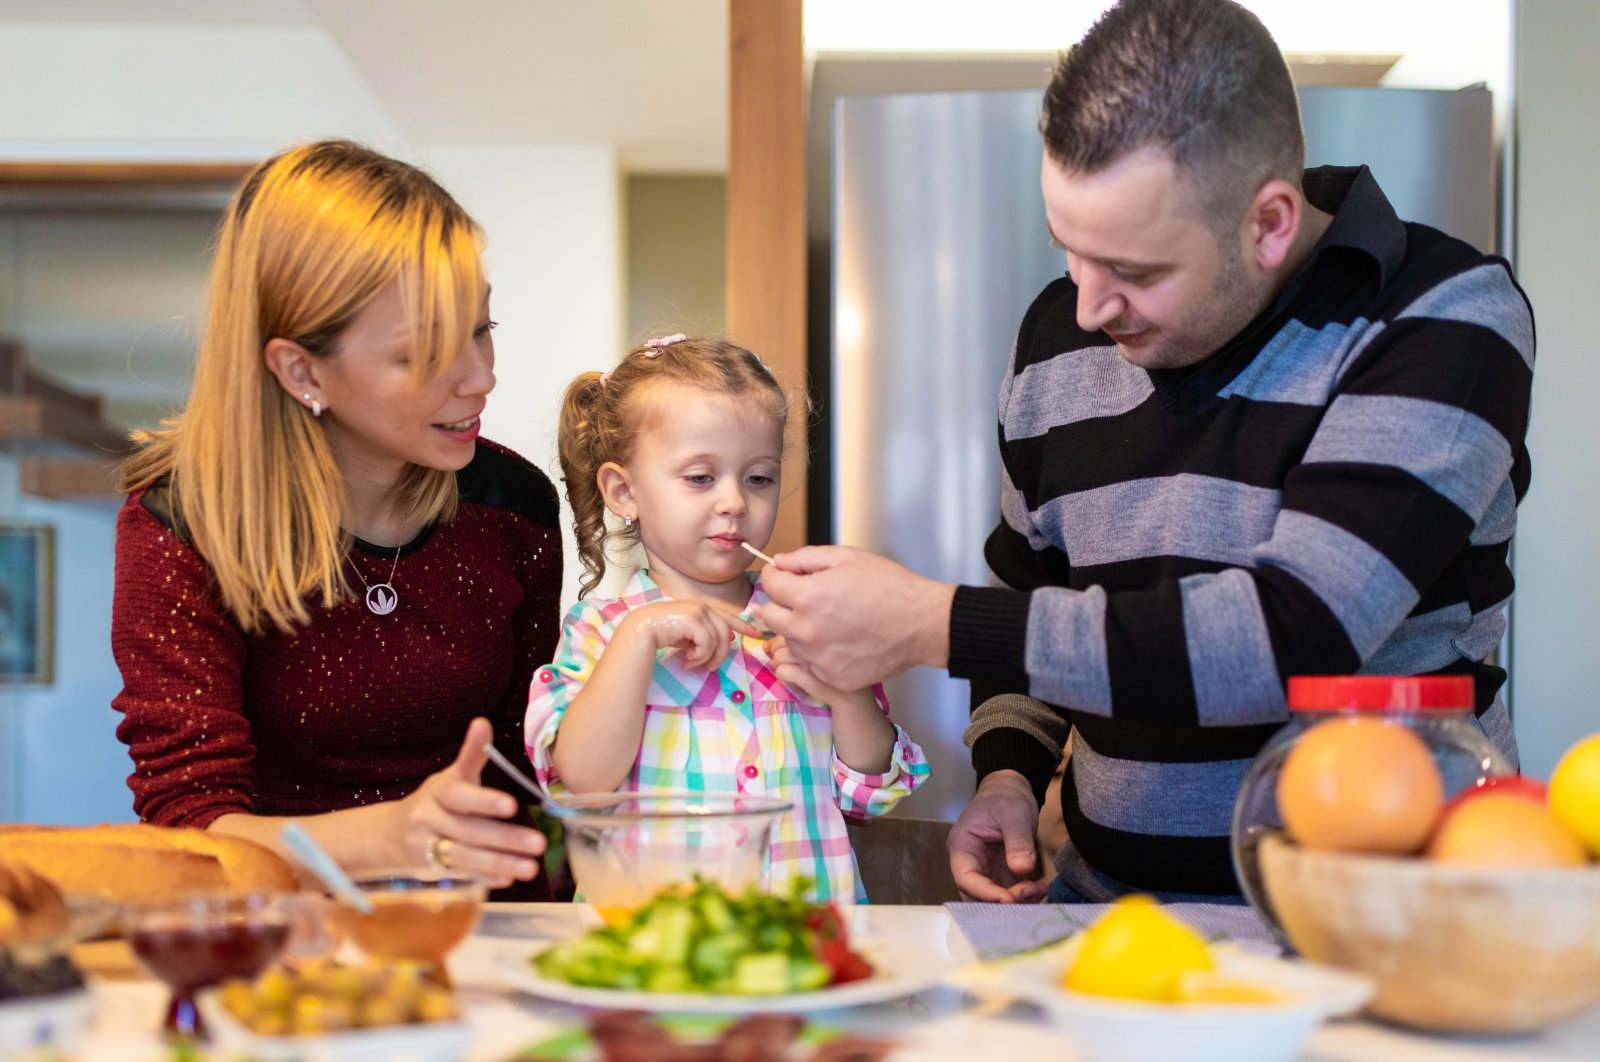 With weekend curfews and many workplaces closed, Turkish families have turned to one other during the COVID-19 outbreak. (iStock Photo)